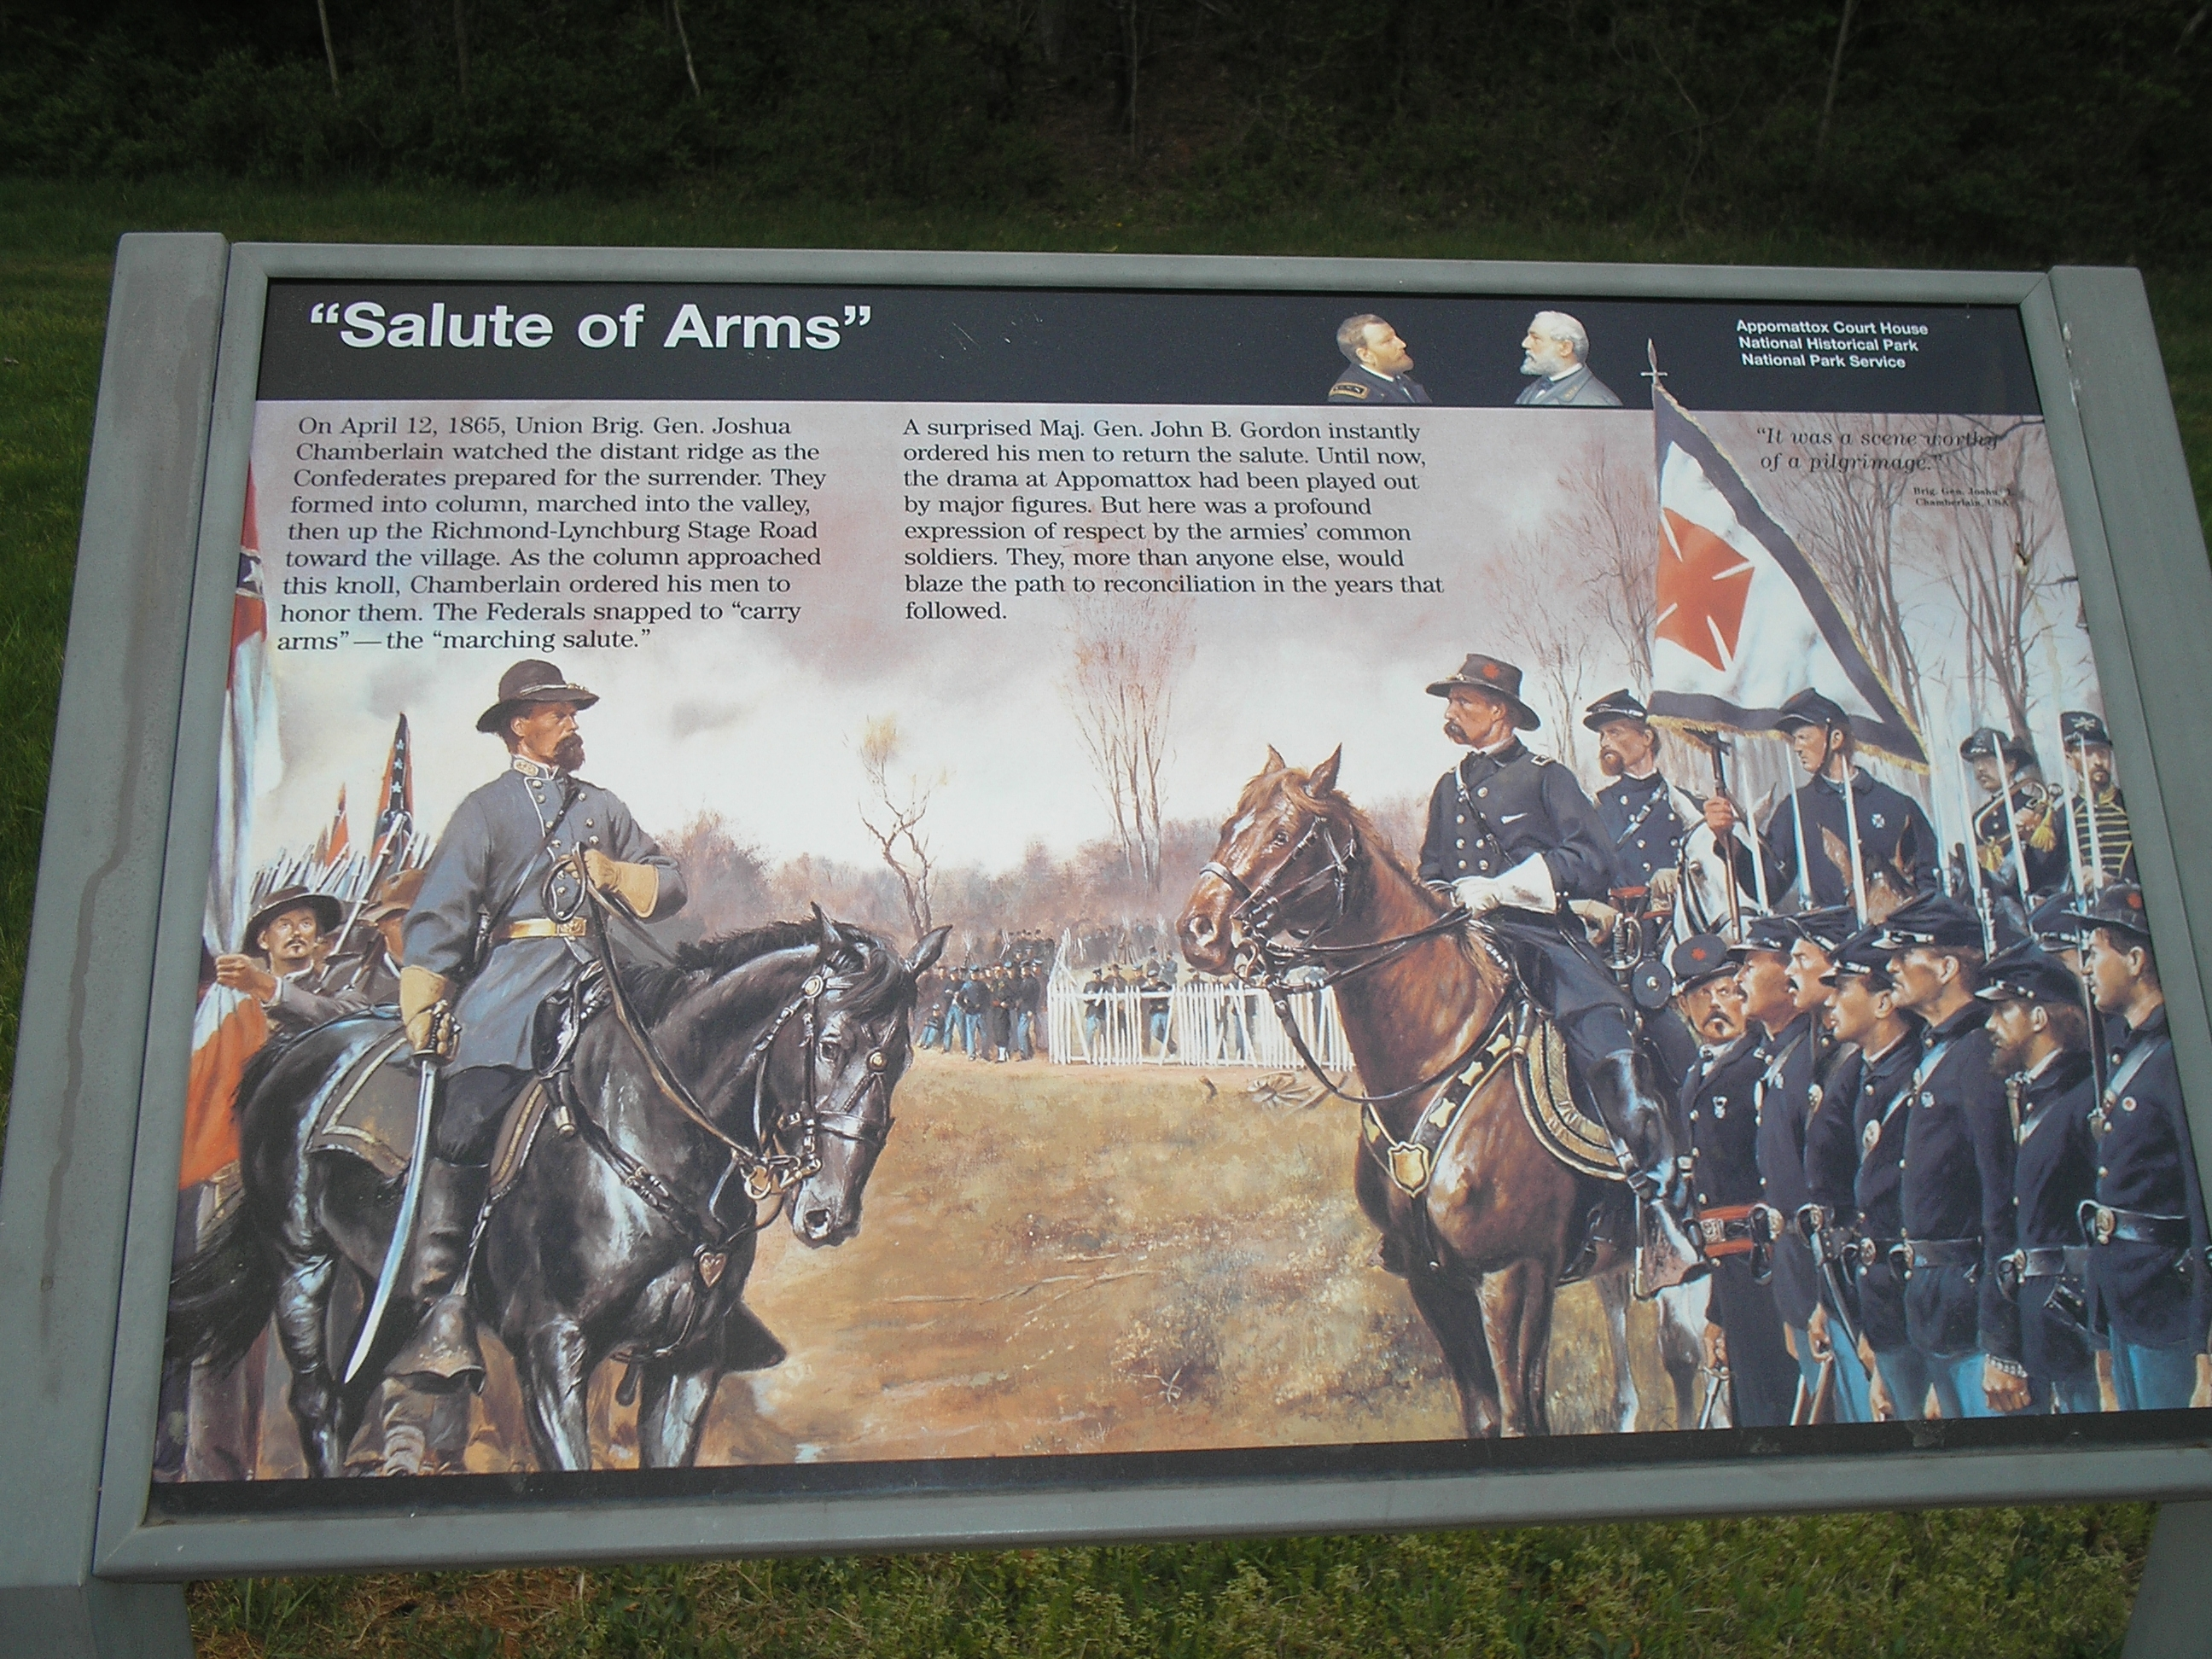 """Salute of Arms"" Marker"